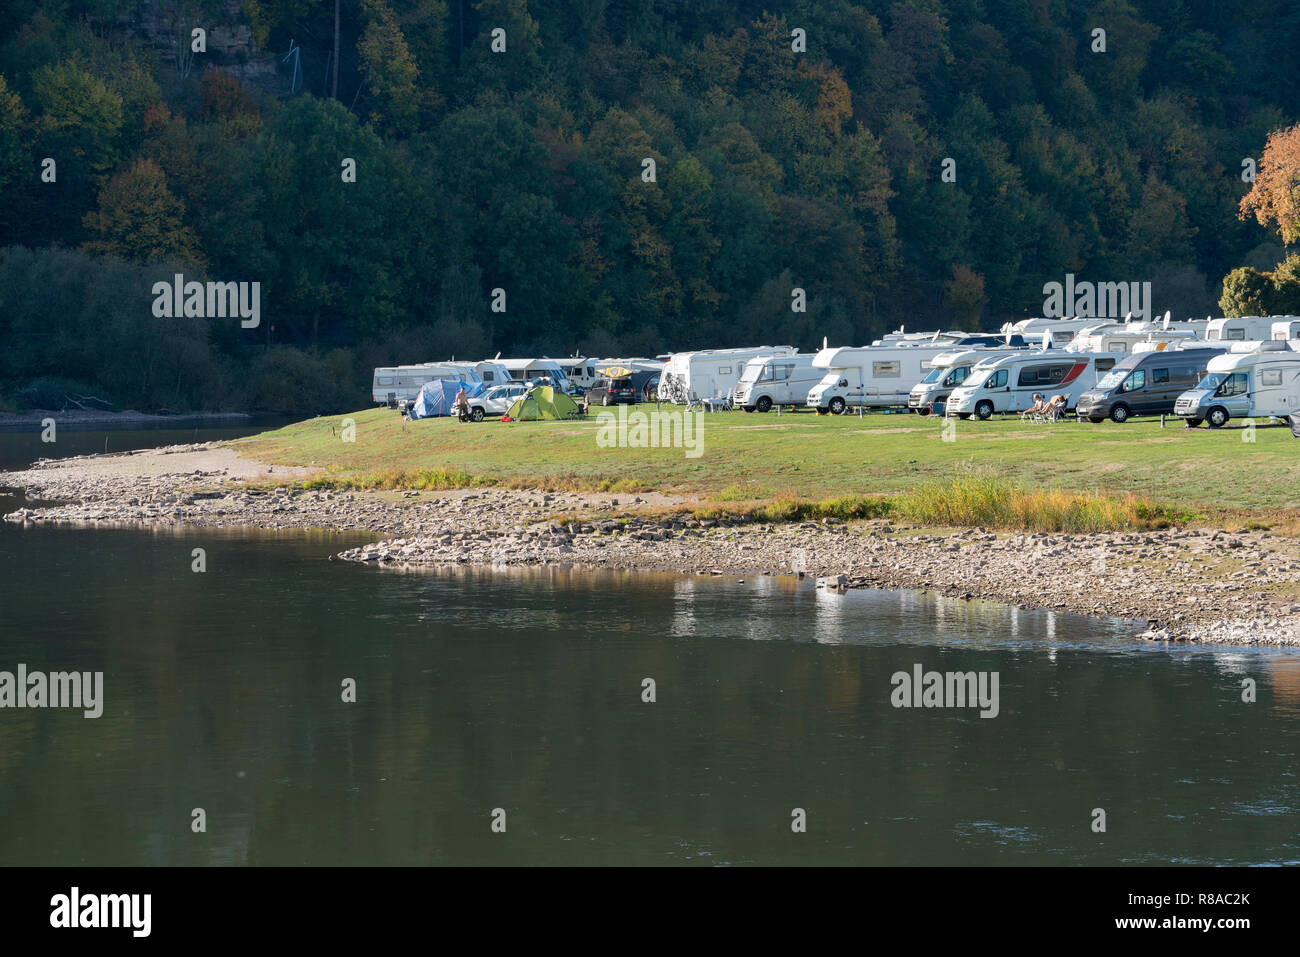 Campsite at Bad Karlshafen, Upper Weser Valley,  Weser Uplands, Weserbergland, Hesse, Germany, Europe - Stock Image